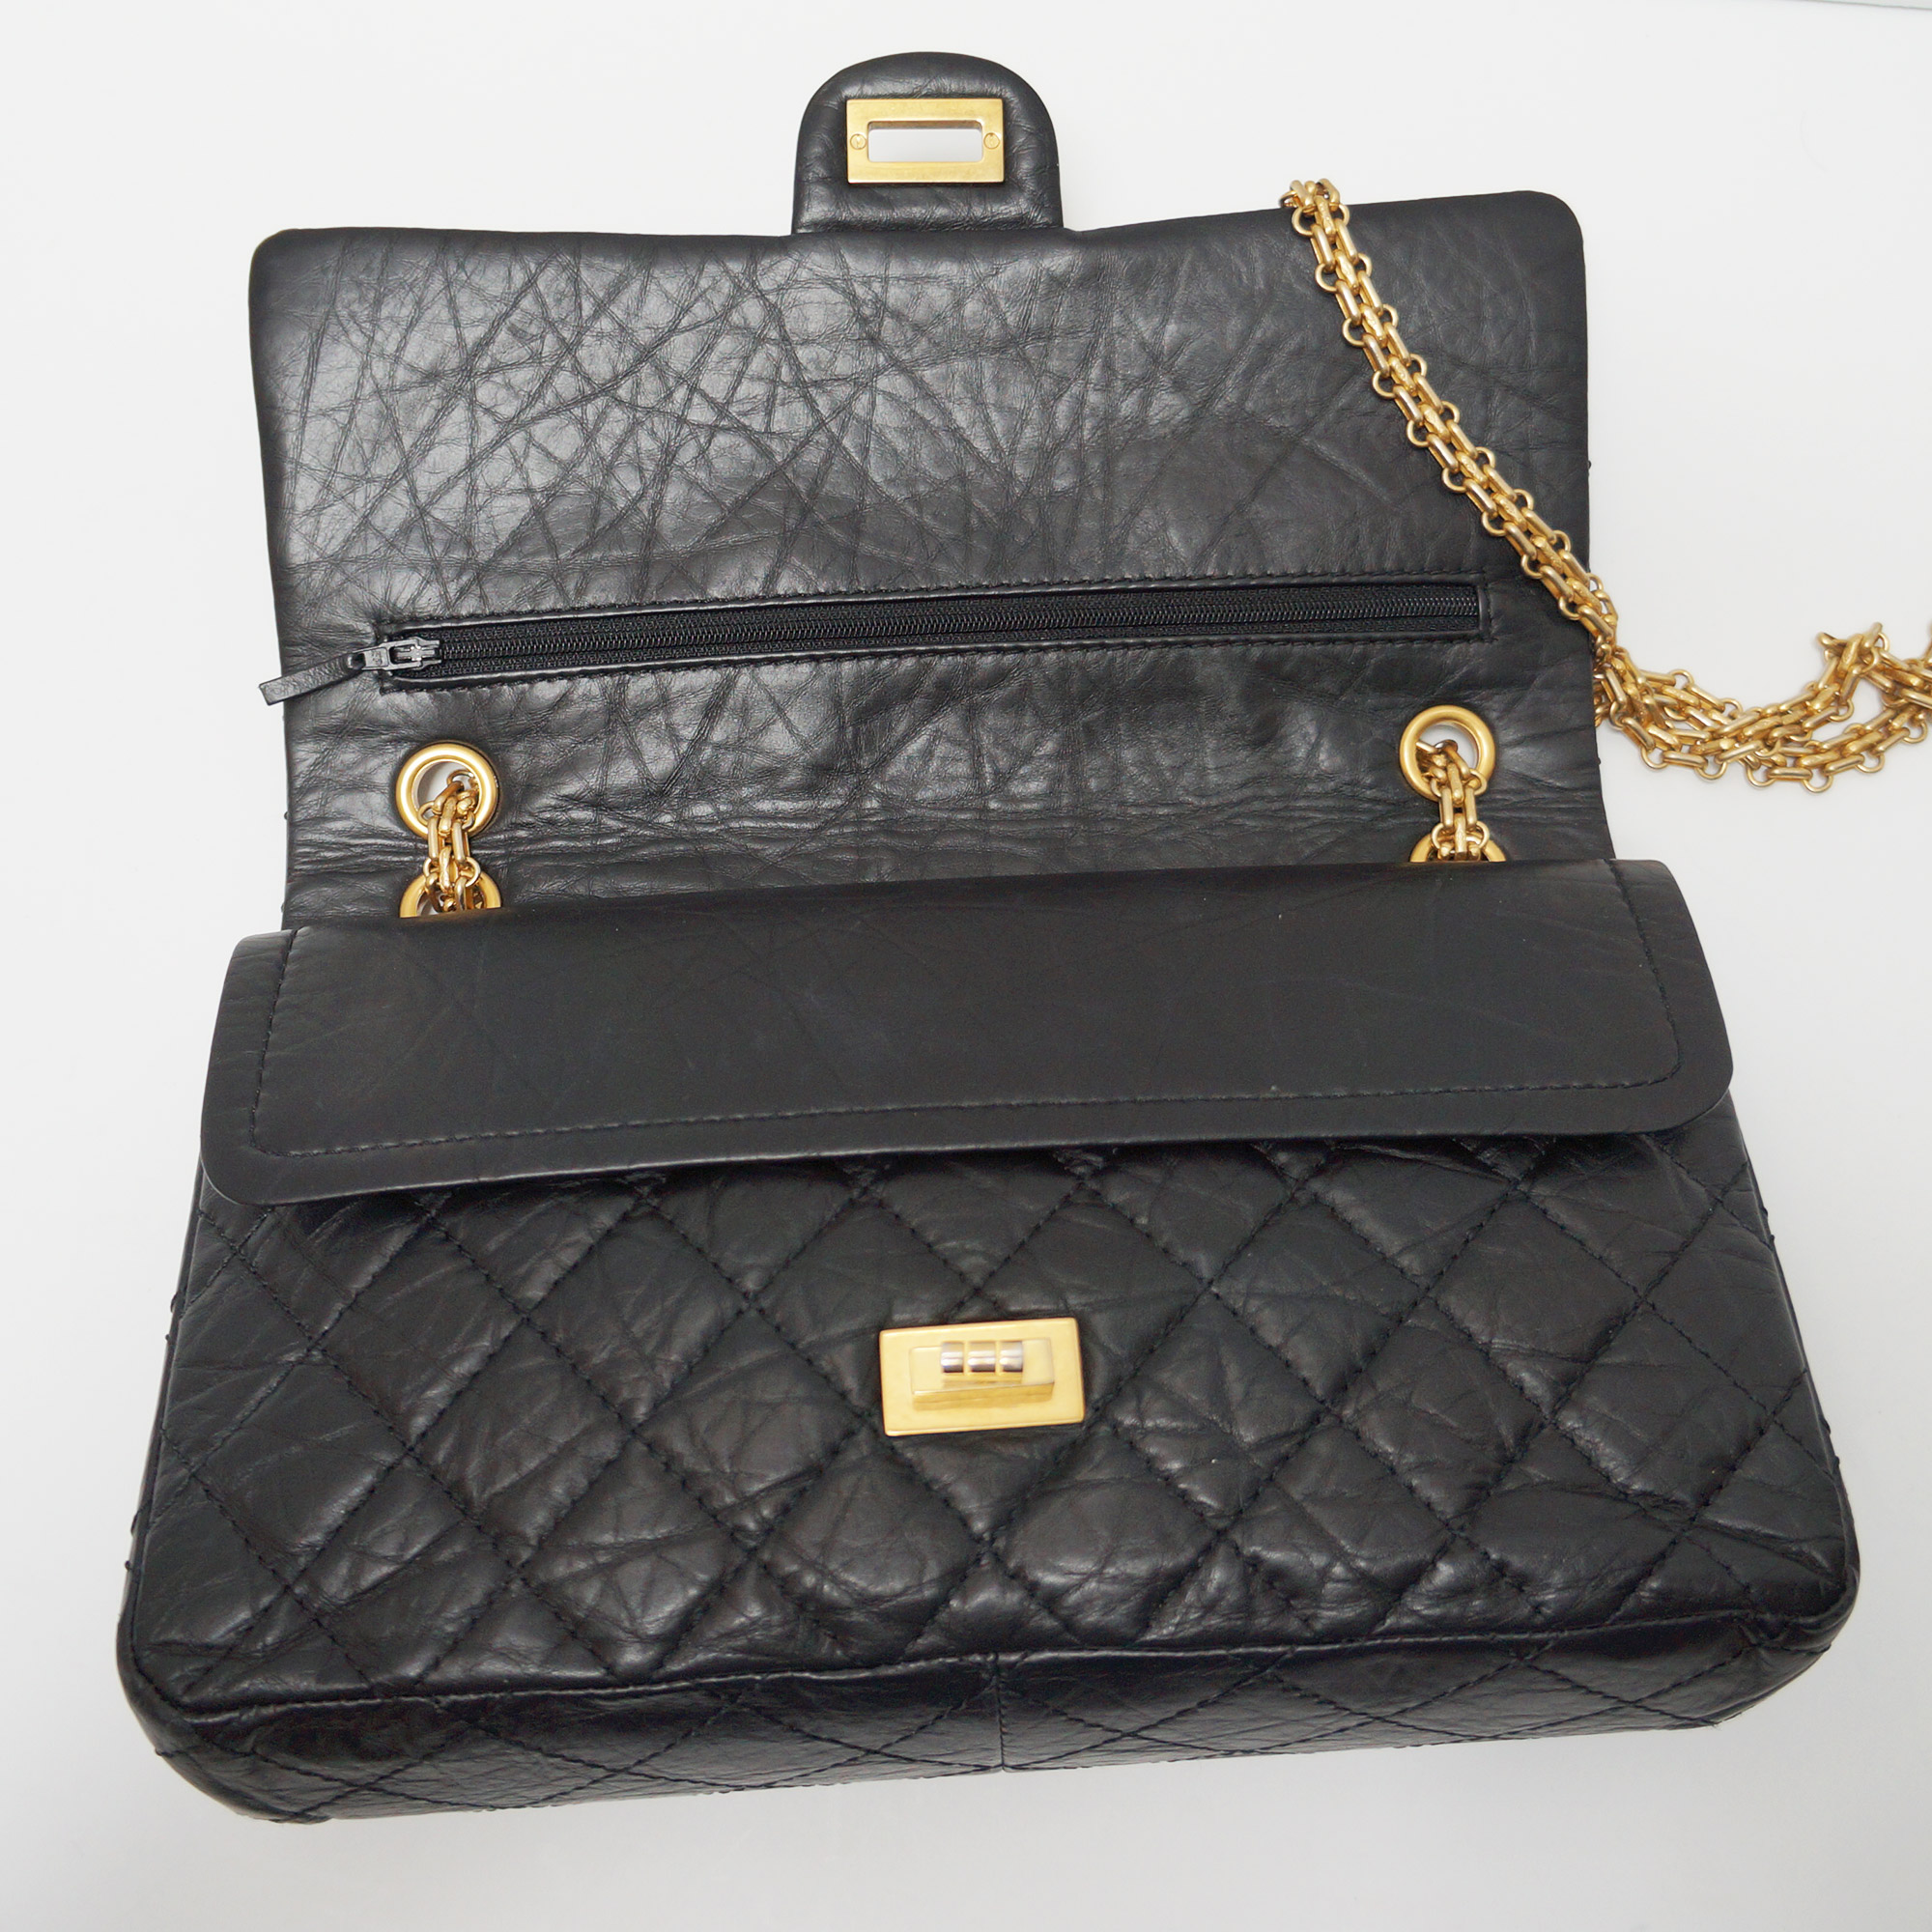 ef4fae7c7219 CHANEL 2.55 REISSUE FLAP Bag, 226 Size Black Aged Leather Gold Hardware |  eBay